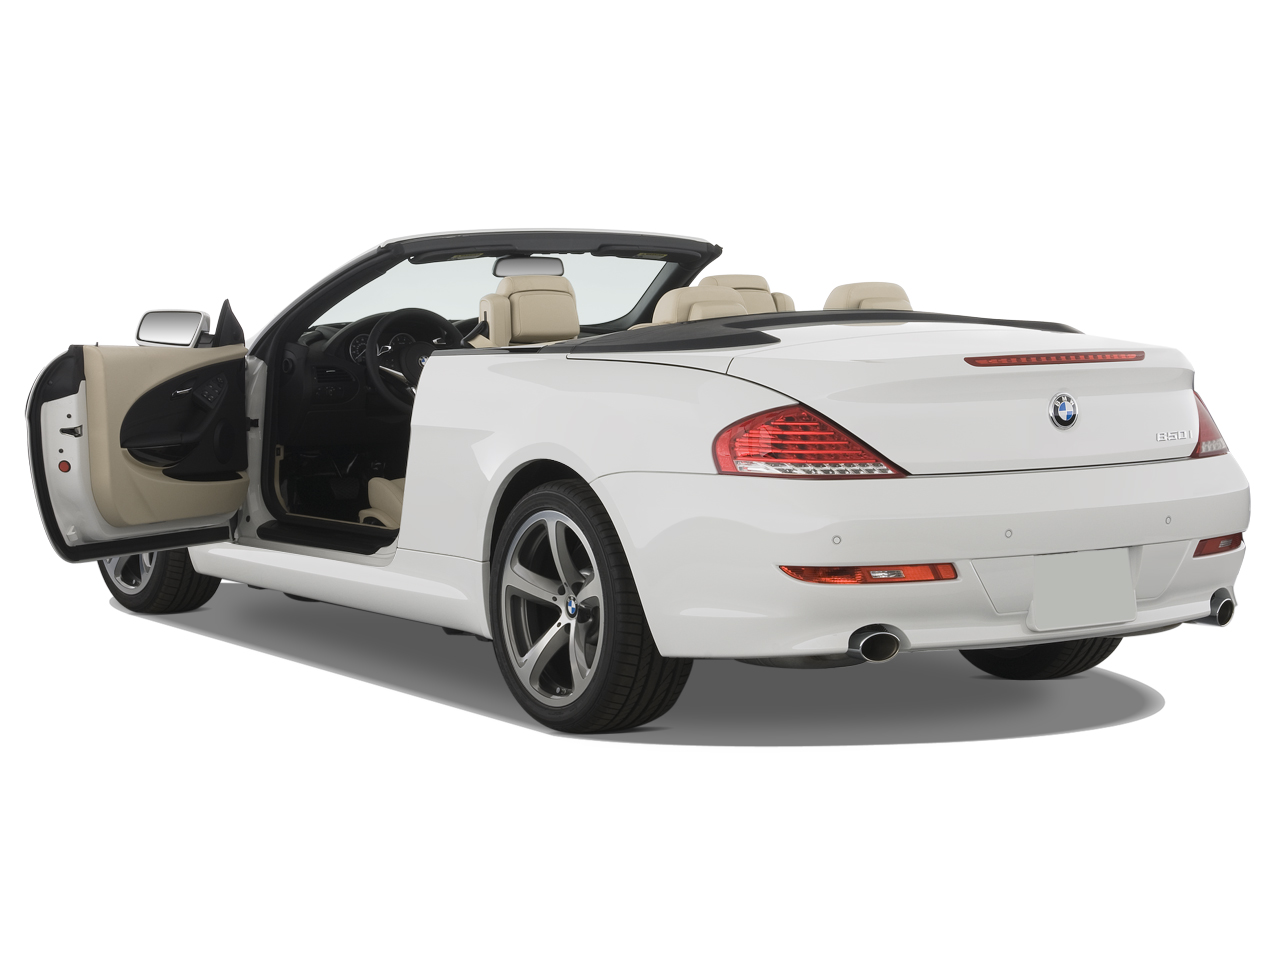 2008 BMW 6-series Facelift - Latest News, Features, and Model ...